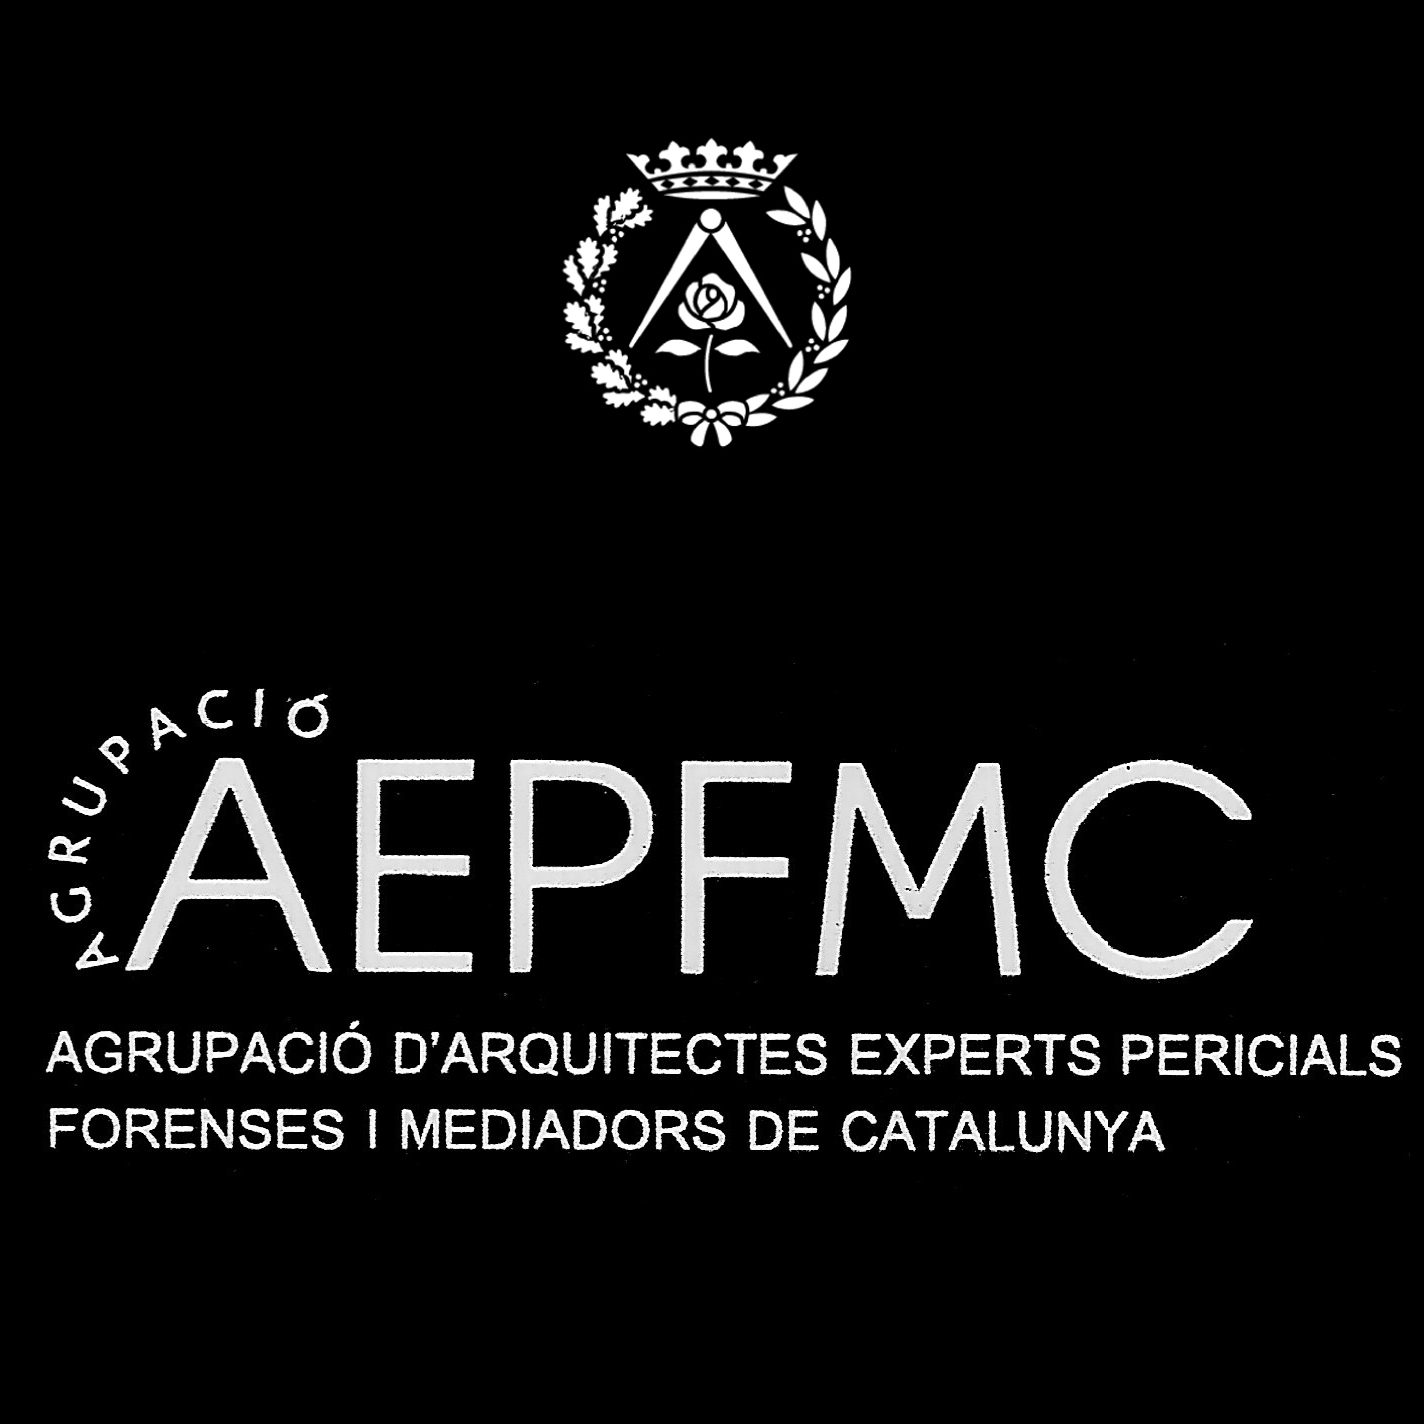 Arquitectes Experts Pericials i Forenses